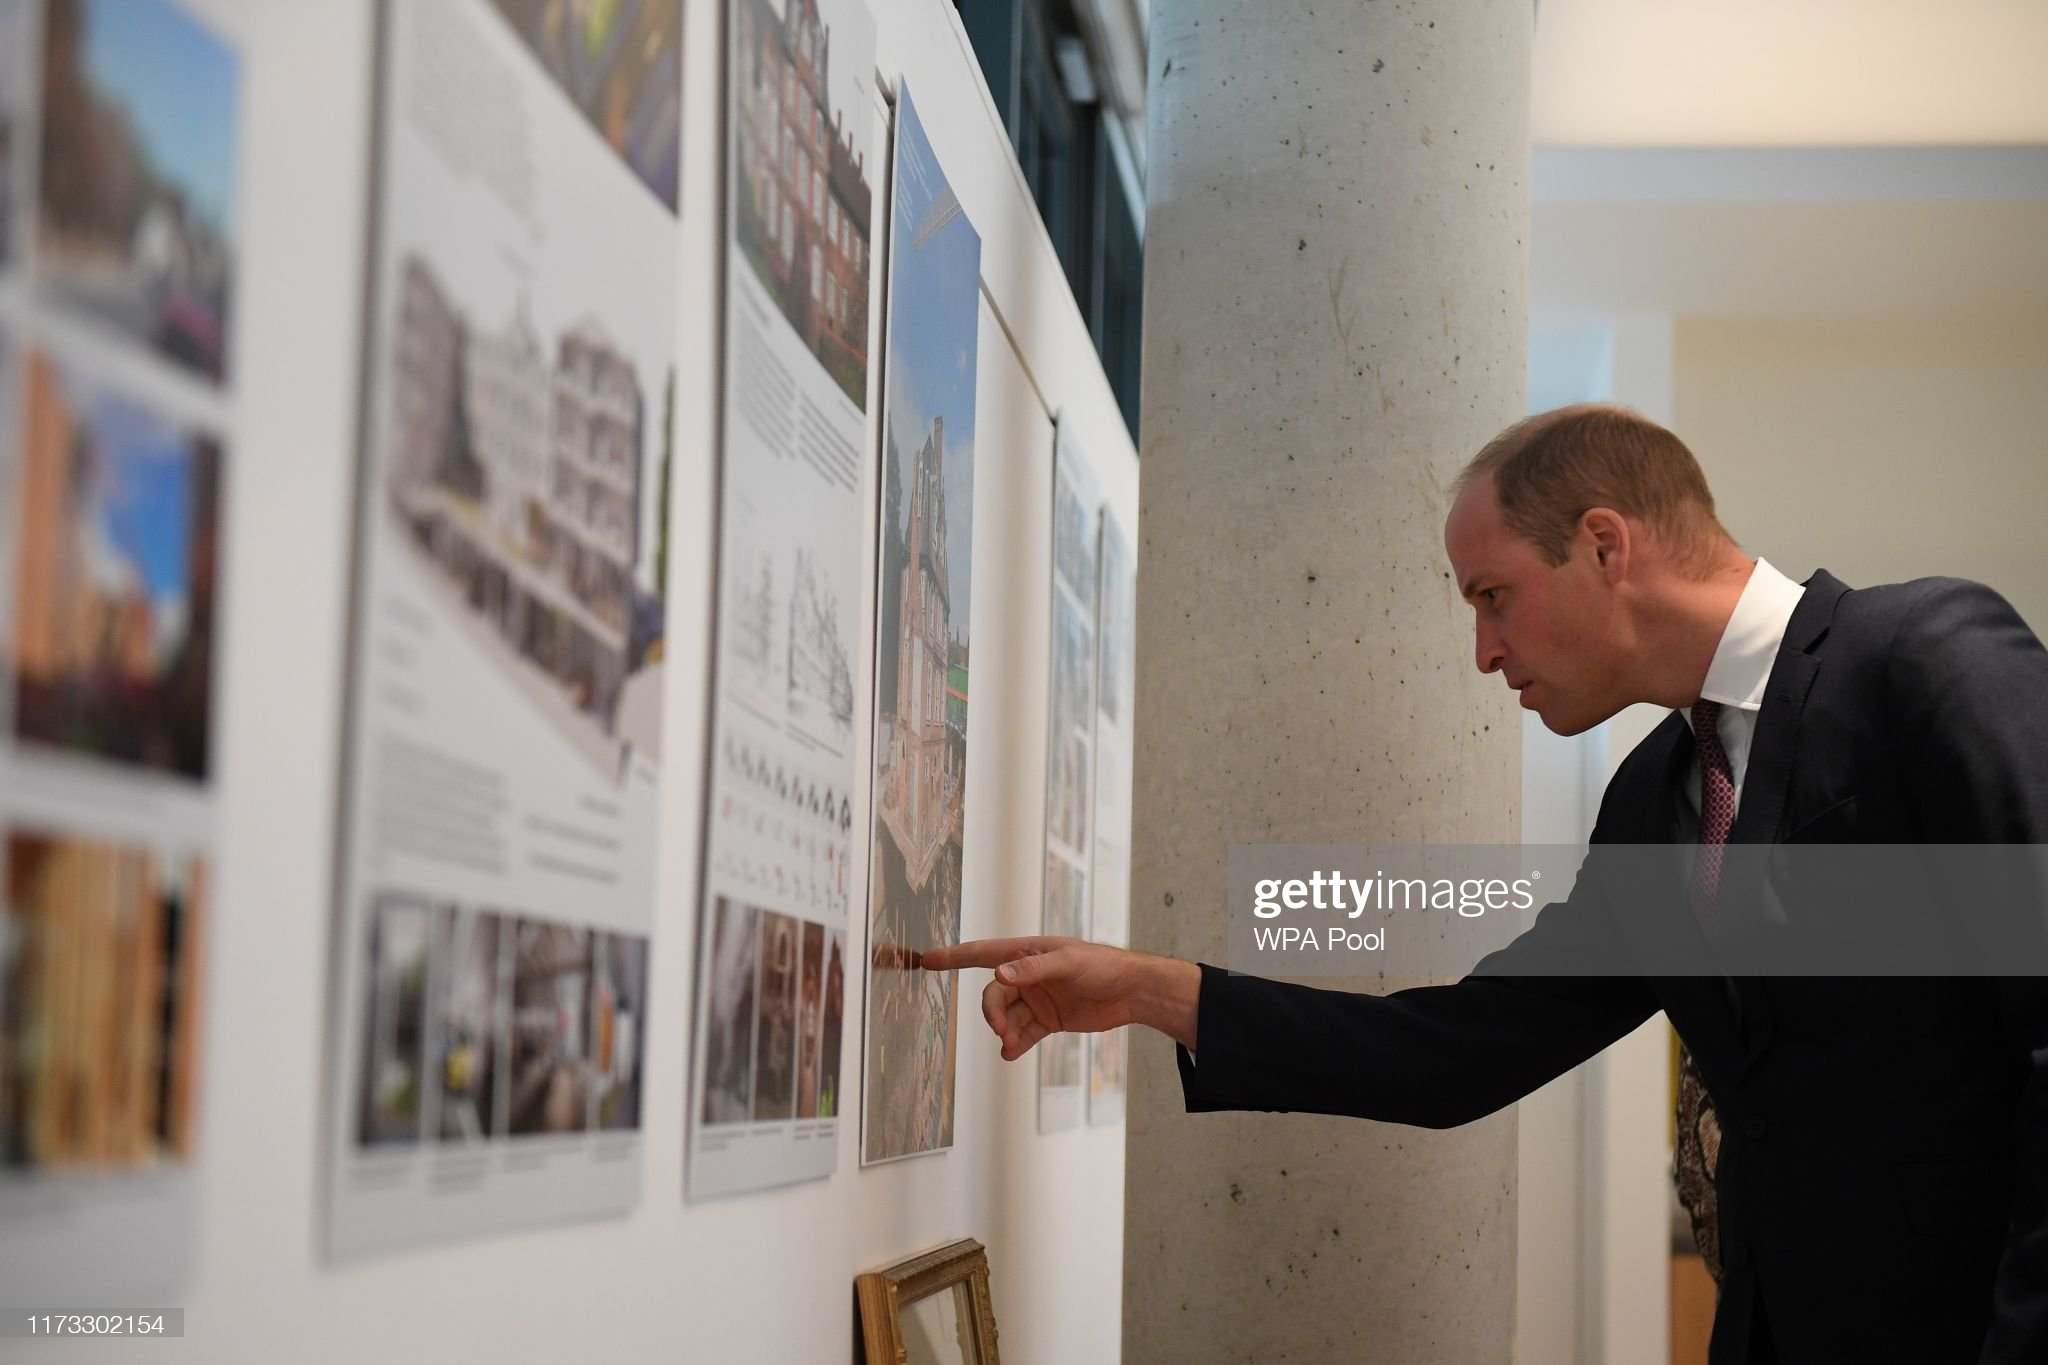 prince-william-duke-of-cambridge-looks-at-artwork-illustrating-the-picture-id1173302154